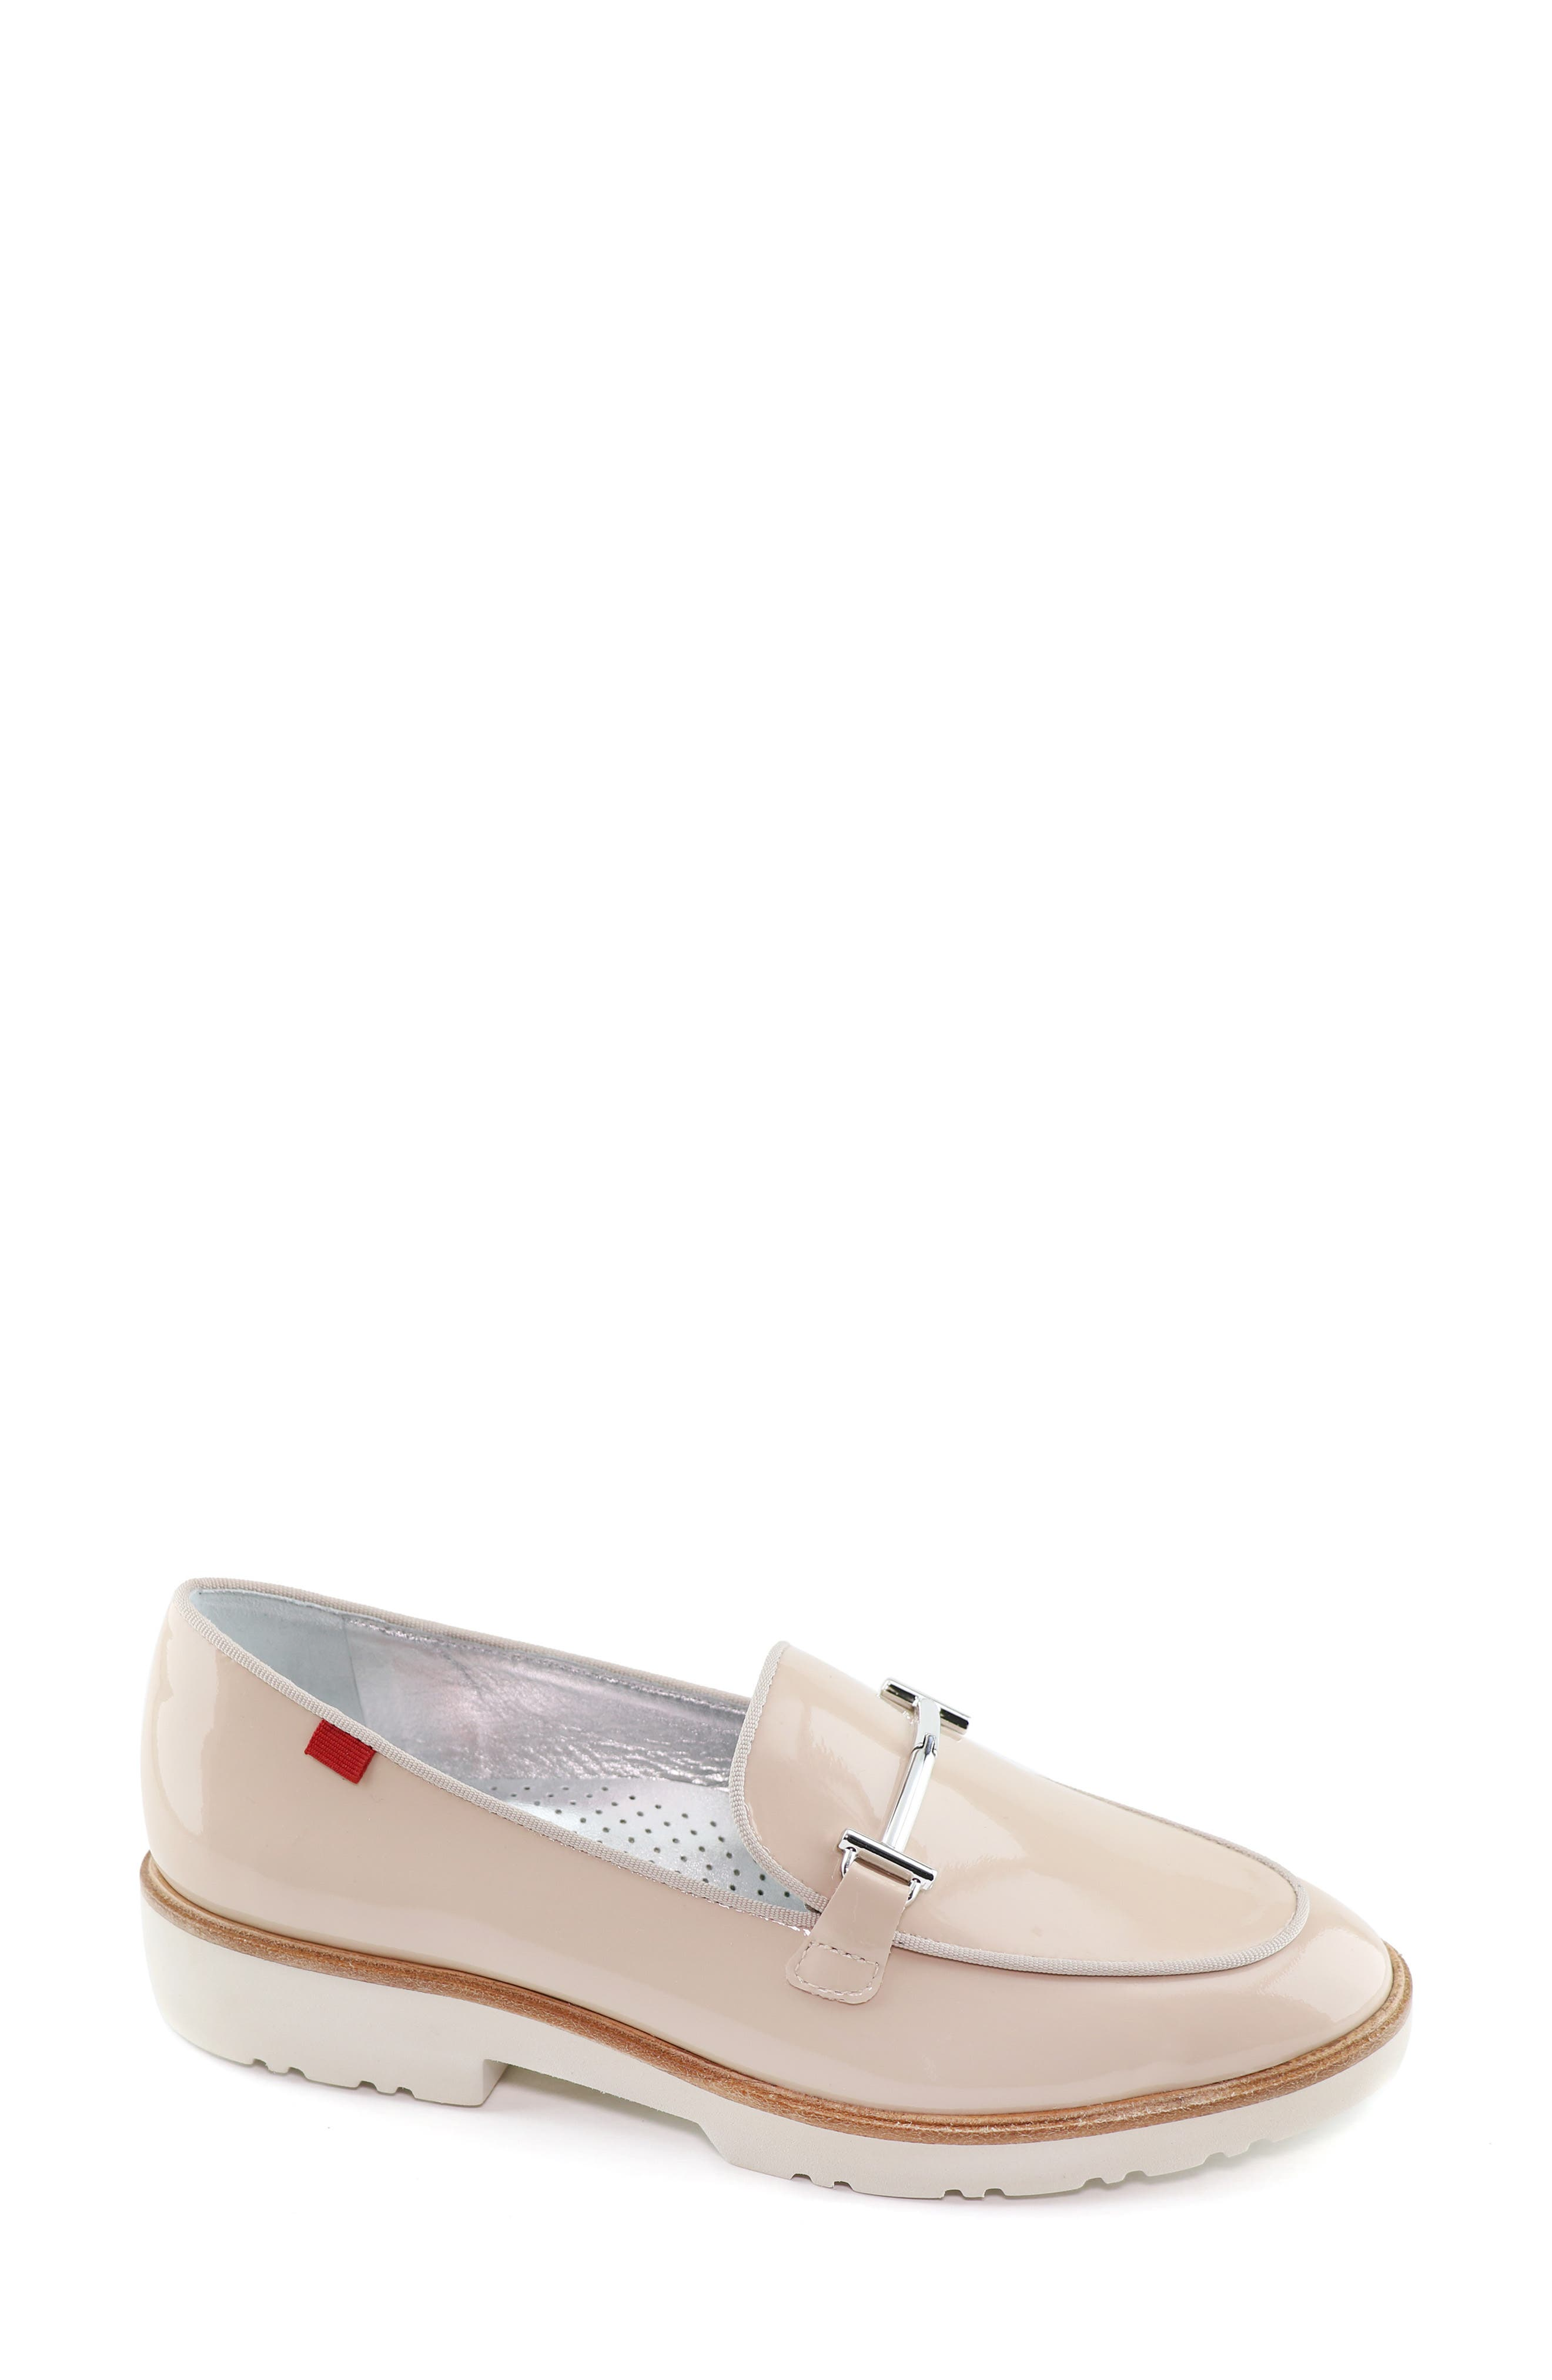 Anchor Place Loafer